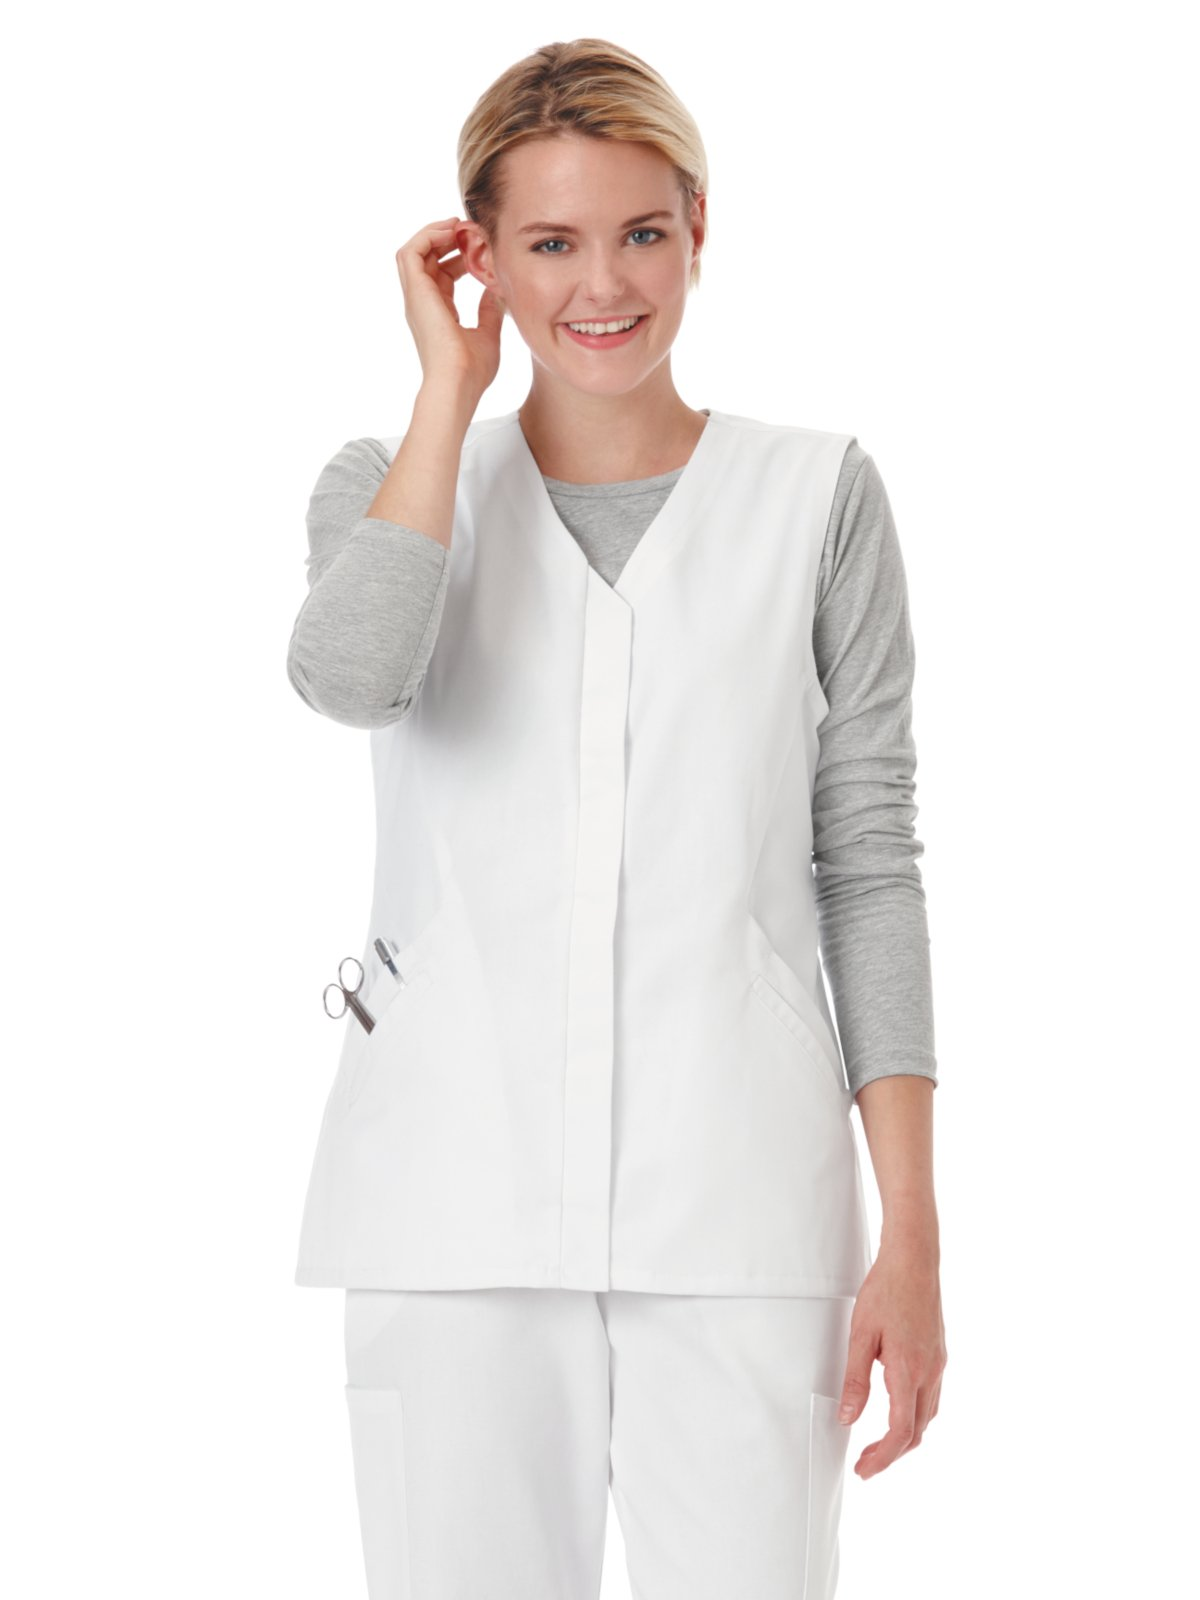 Trust Your Journey F3 Fundamentals by White Swan Women's Twill Button Front Solid Scrub Vest X-Large White